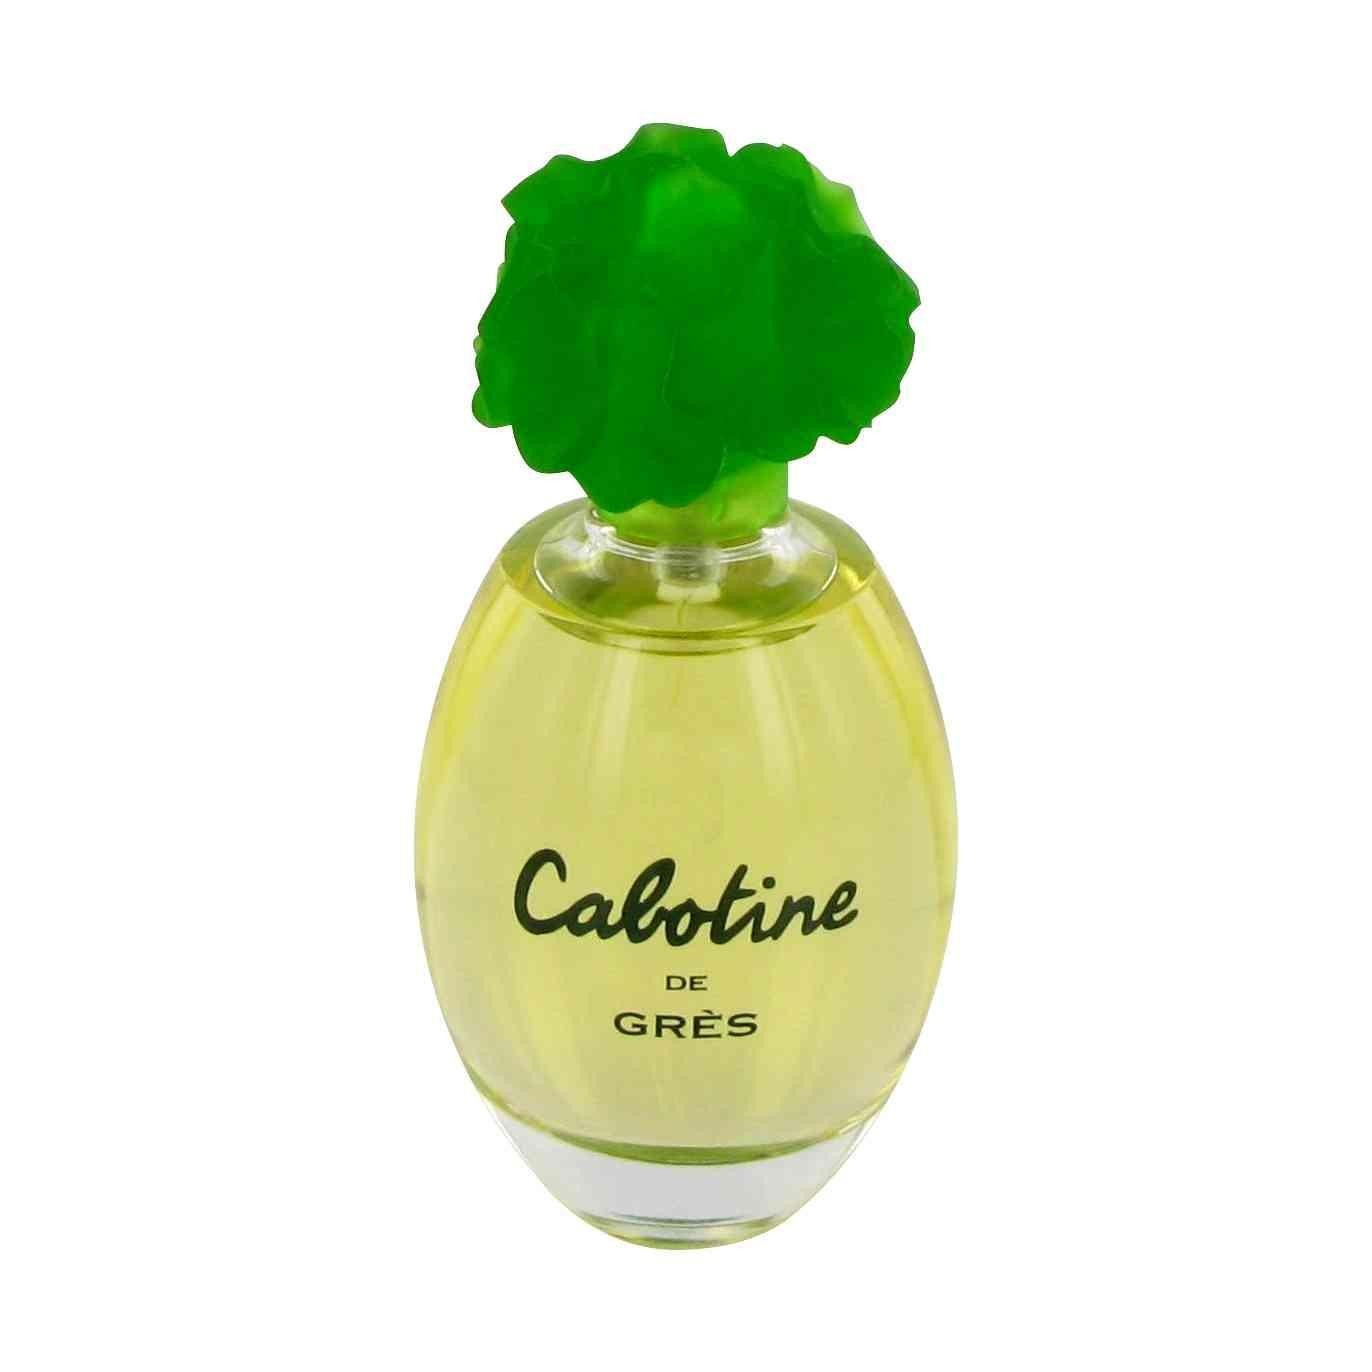 gres cabotine 100ml eau de toilette spray. Black Bedroom Furniture Sets. Home Design Ideas